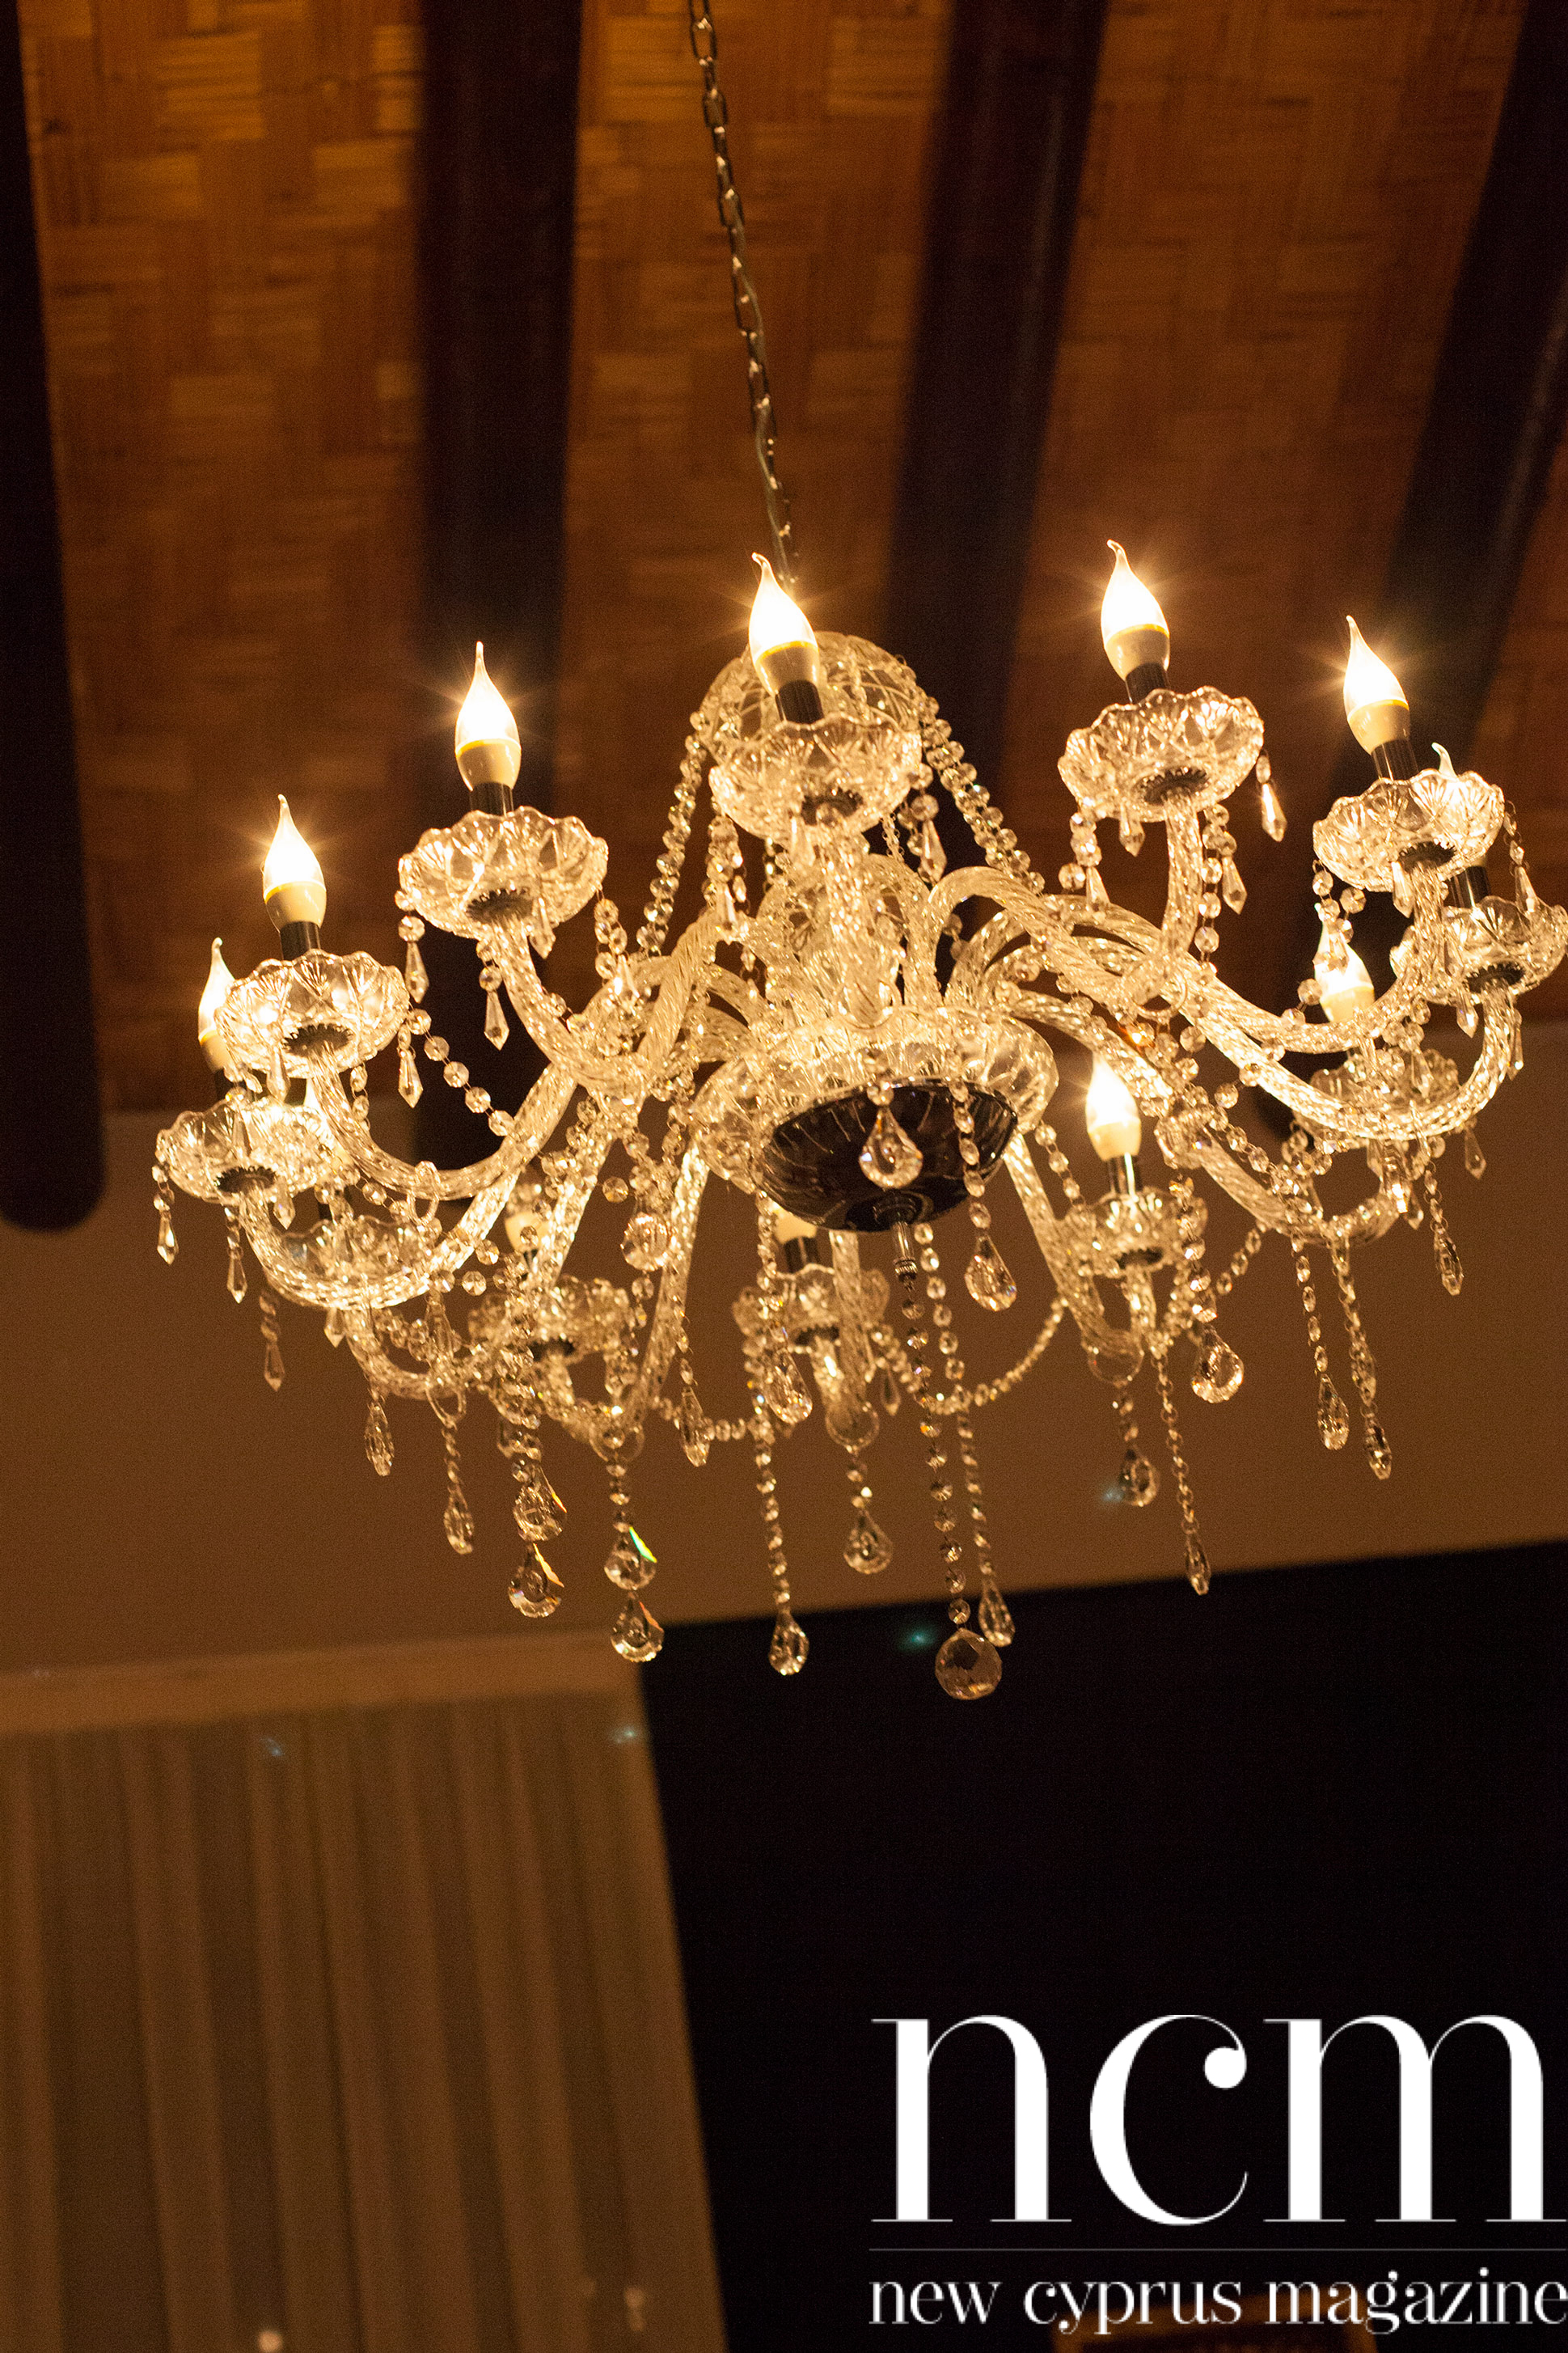 Jazz tones Blakes Lounge chandelier